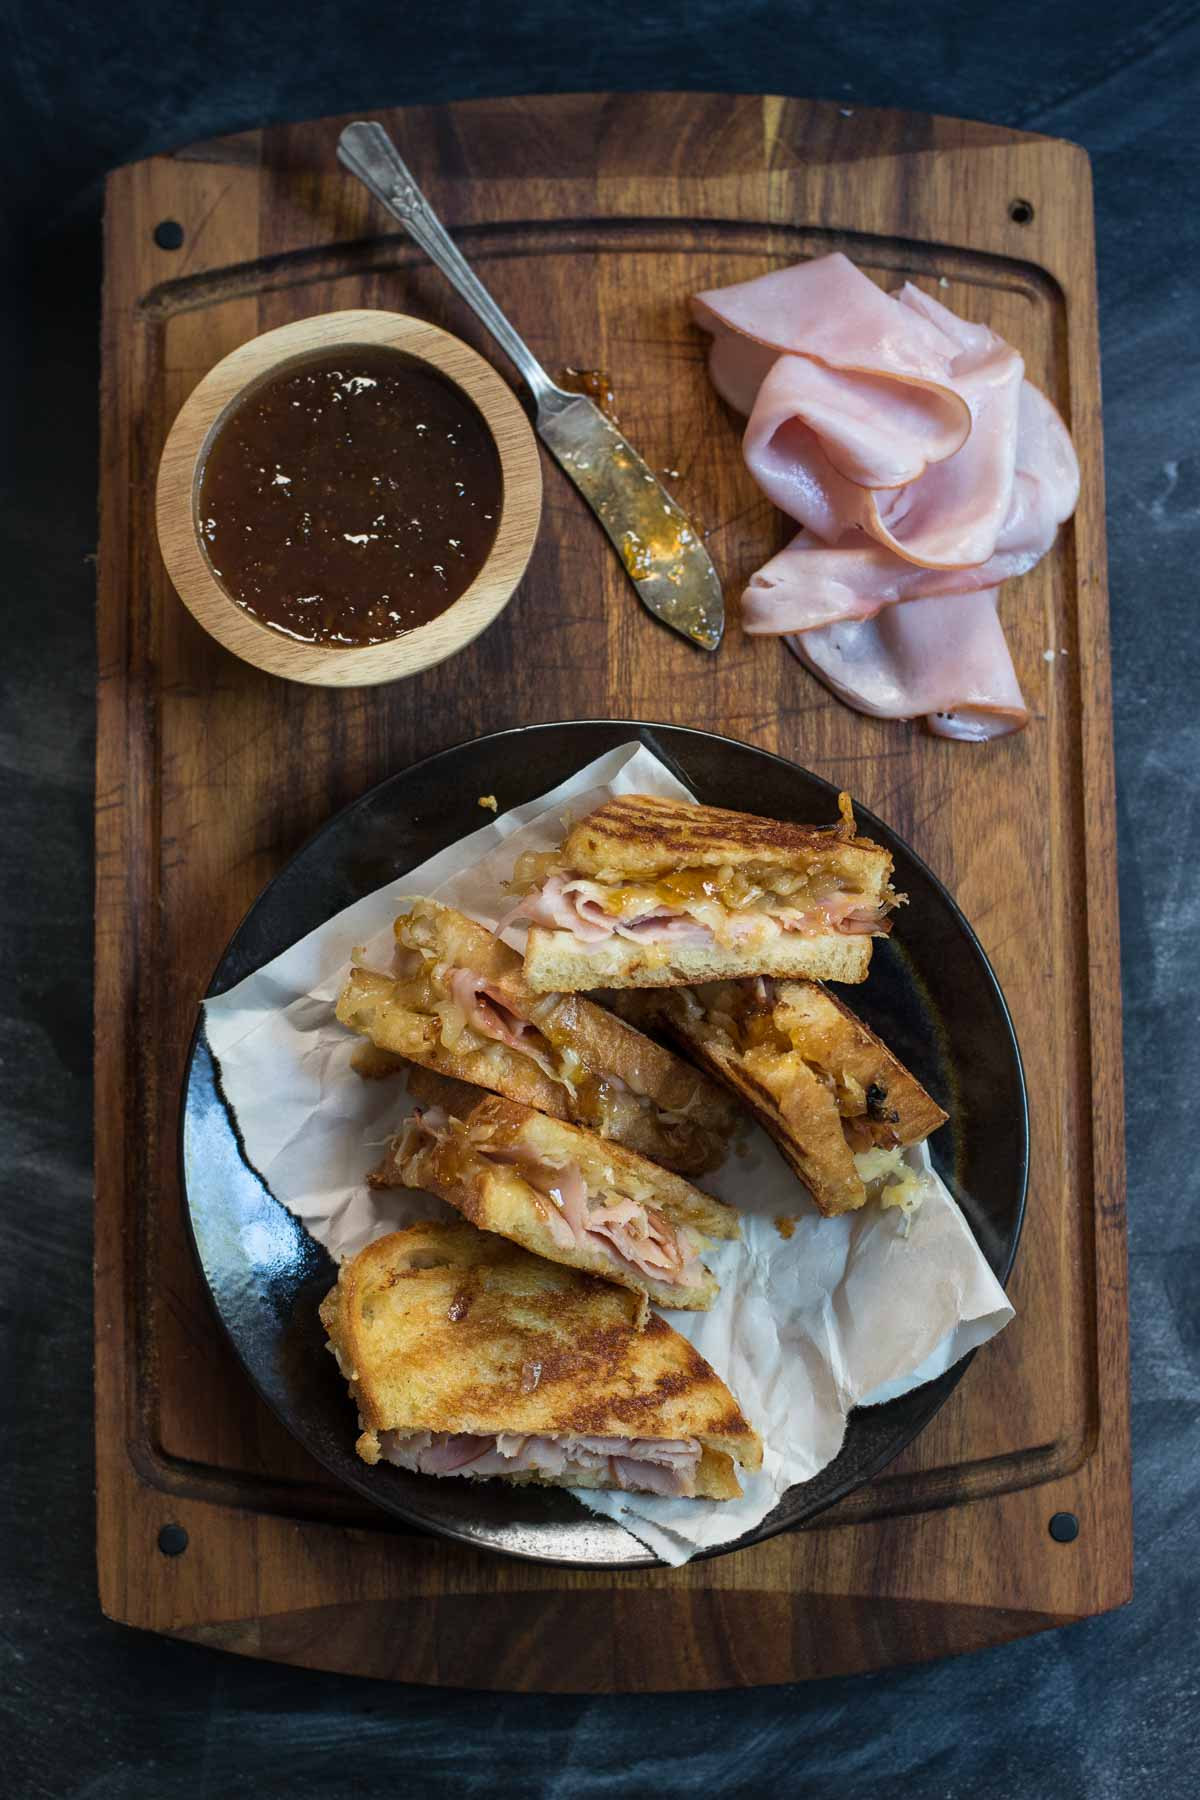 This Gruyere Grilled Cheese with Ham, Caramelized Onions, and Fig Jam is my new favorite grilled cheese combo!